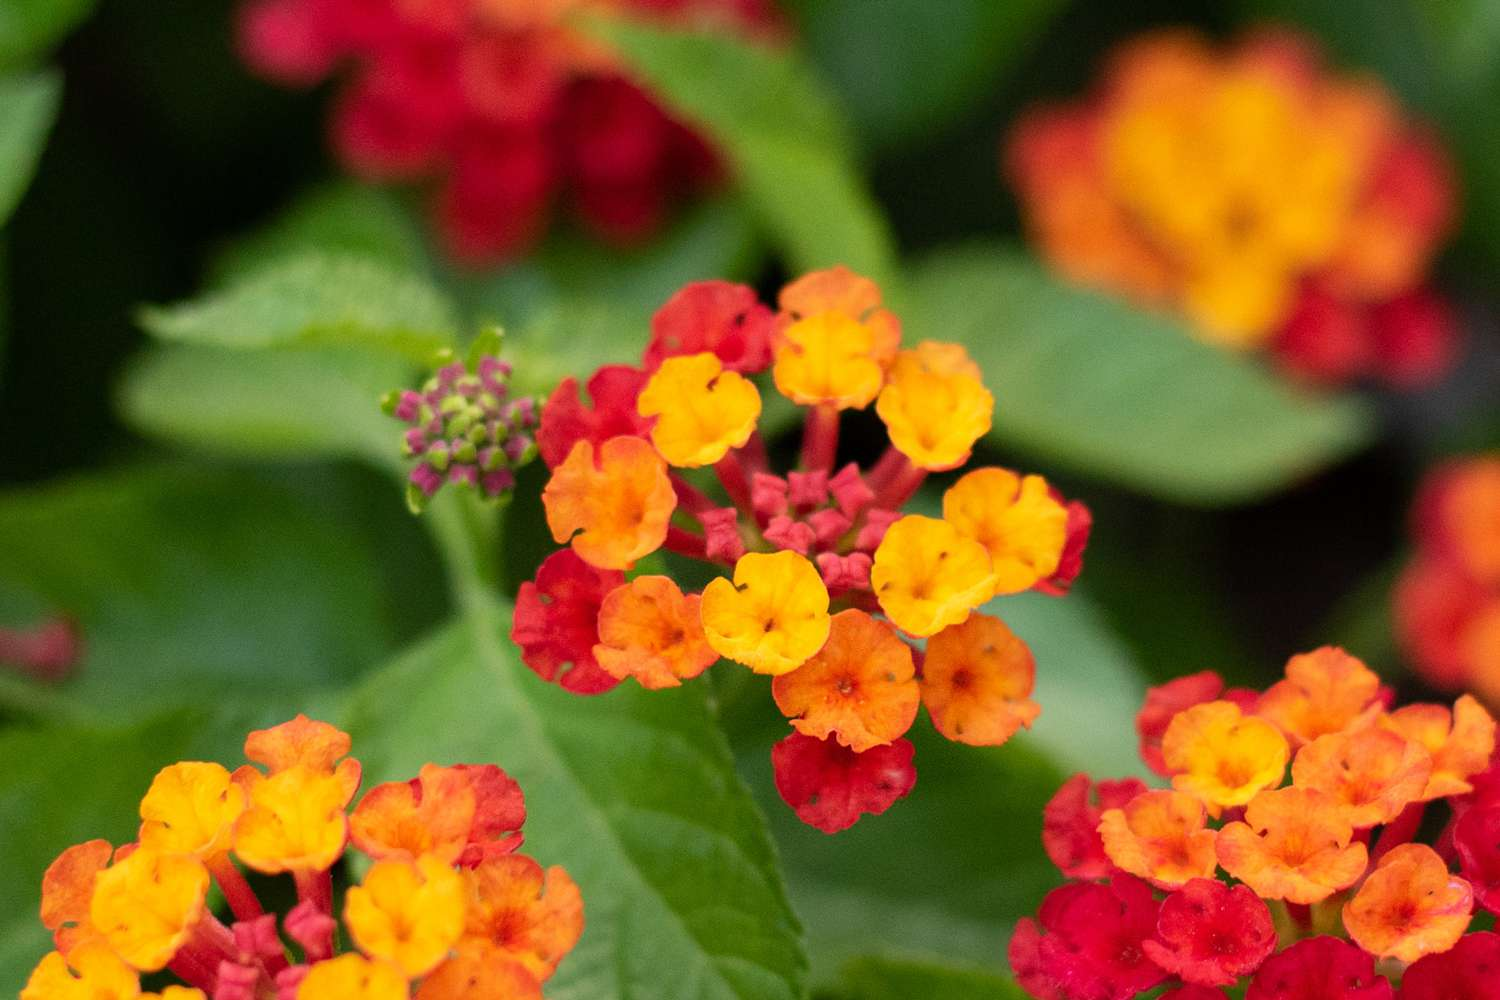 Bloodflower plant with tiny clusters of yellow, orange and red flowers closeup